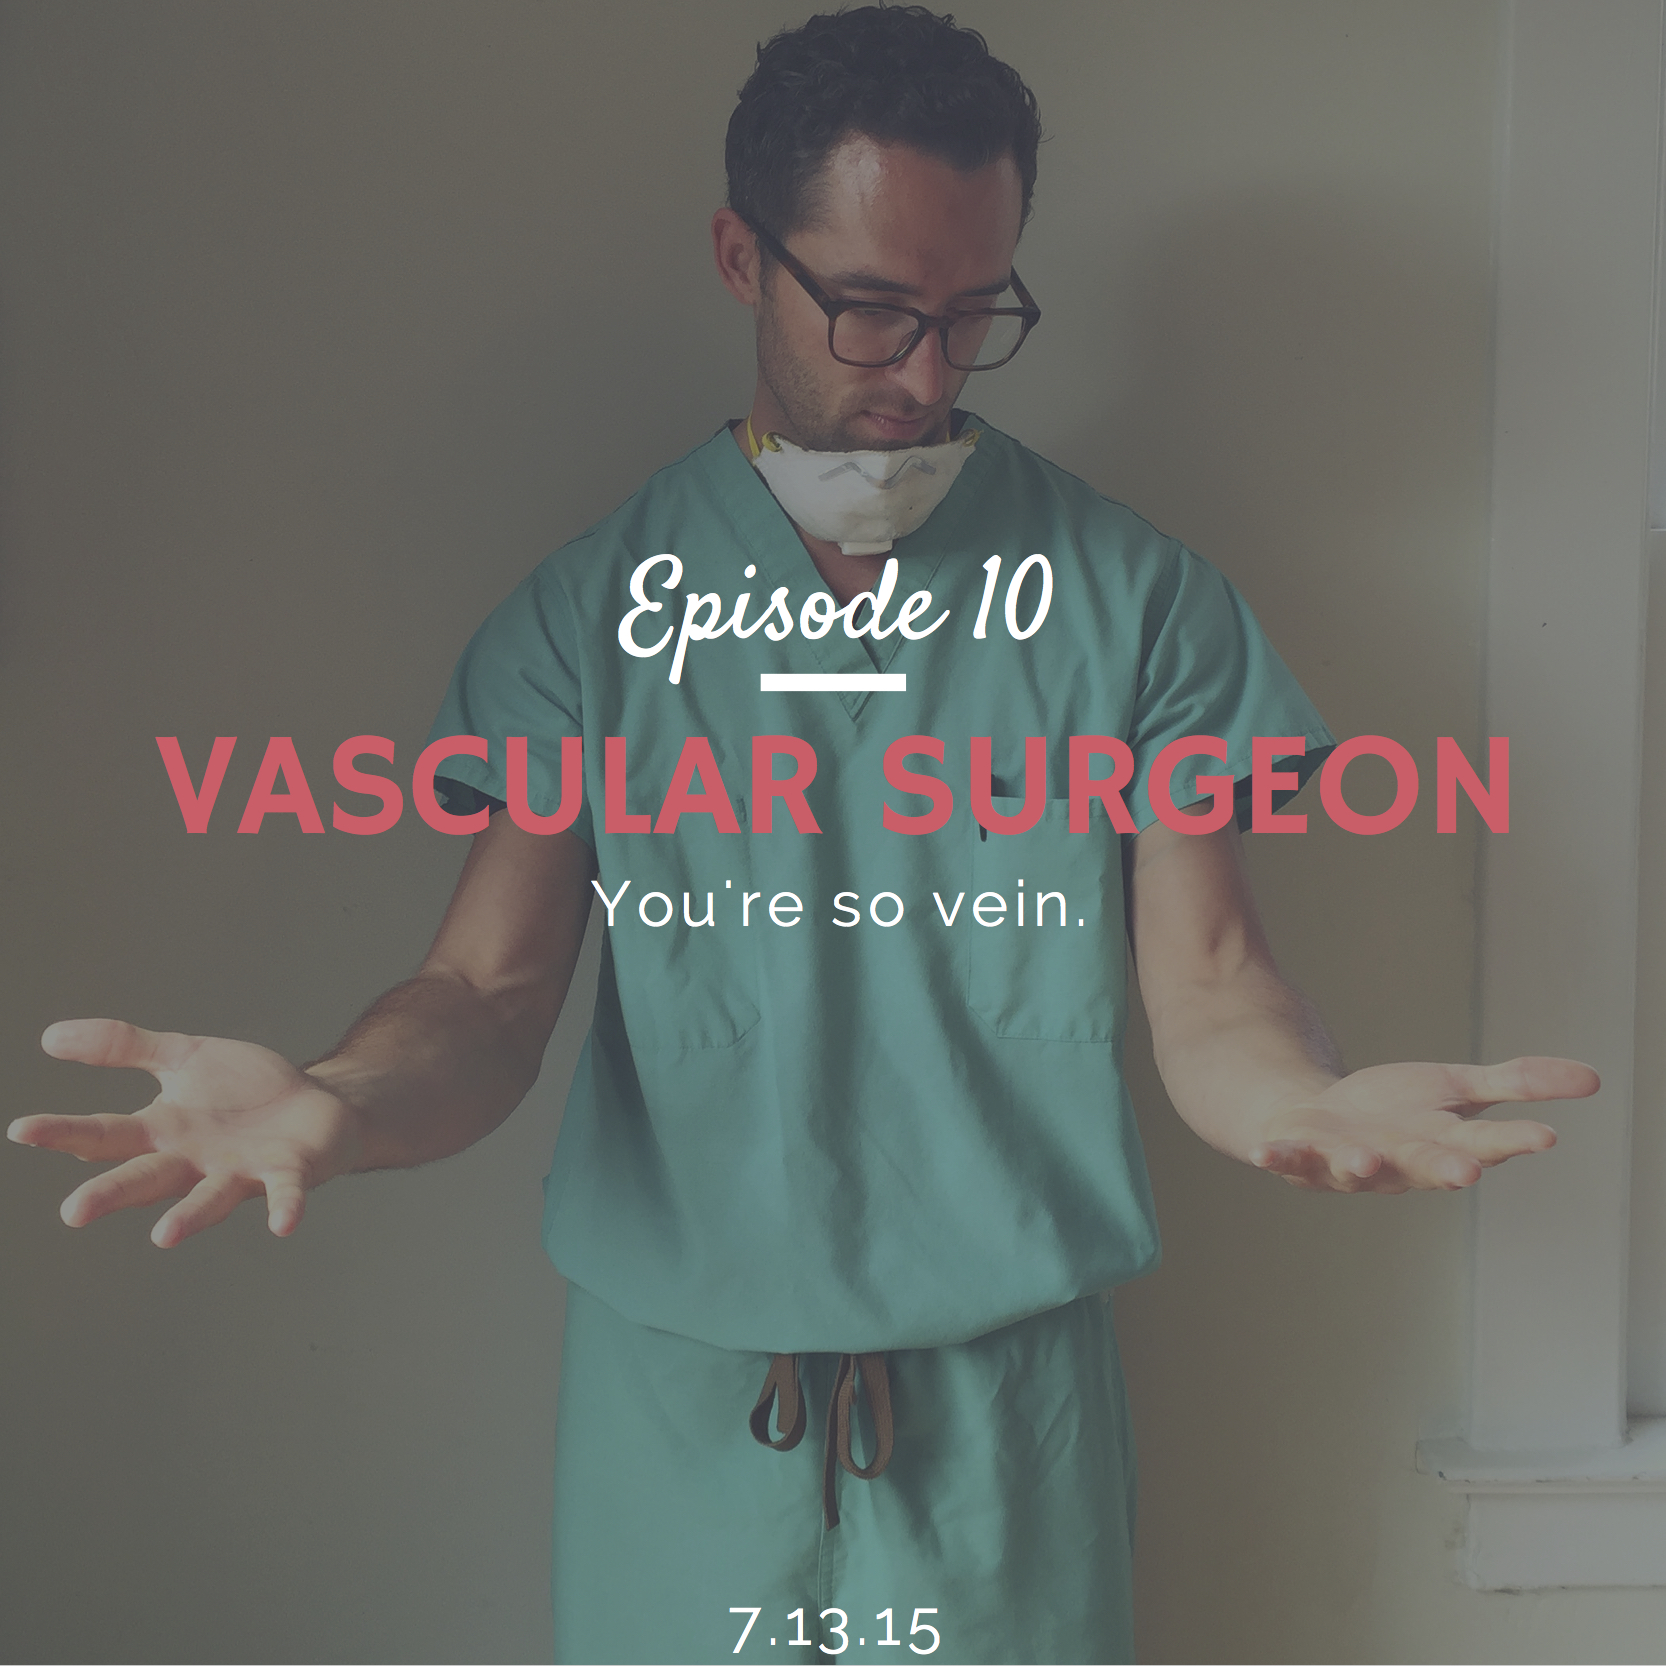 What is it like to be a vascular surgeon interview